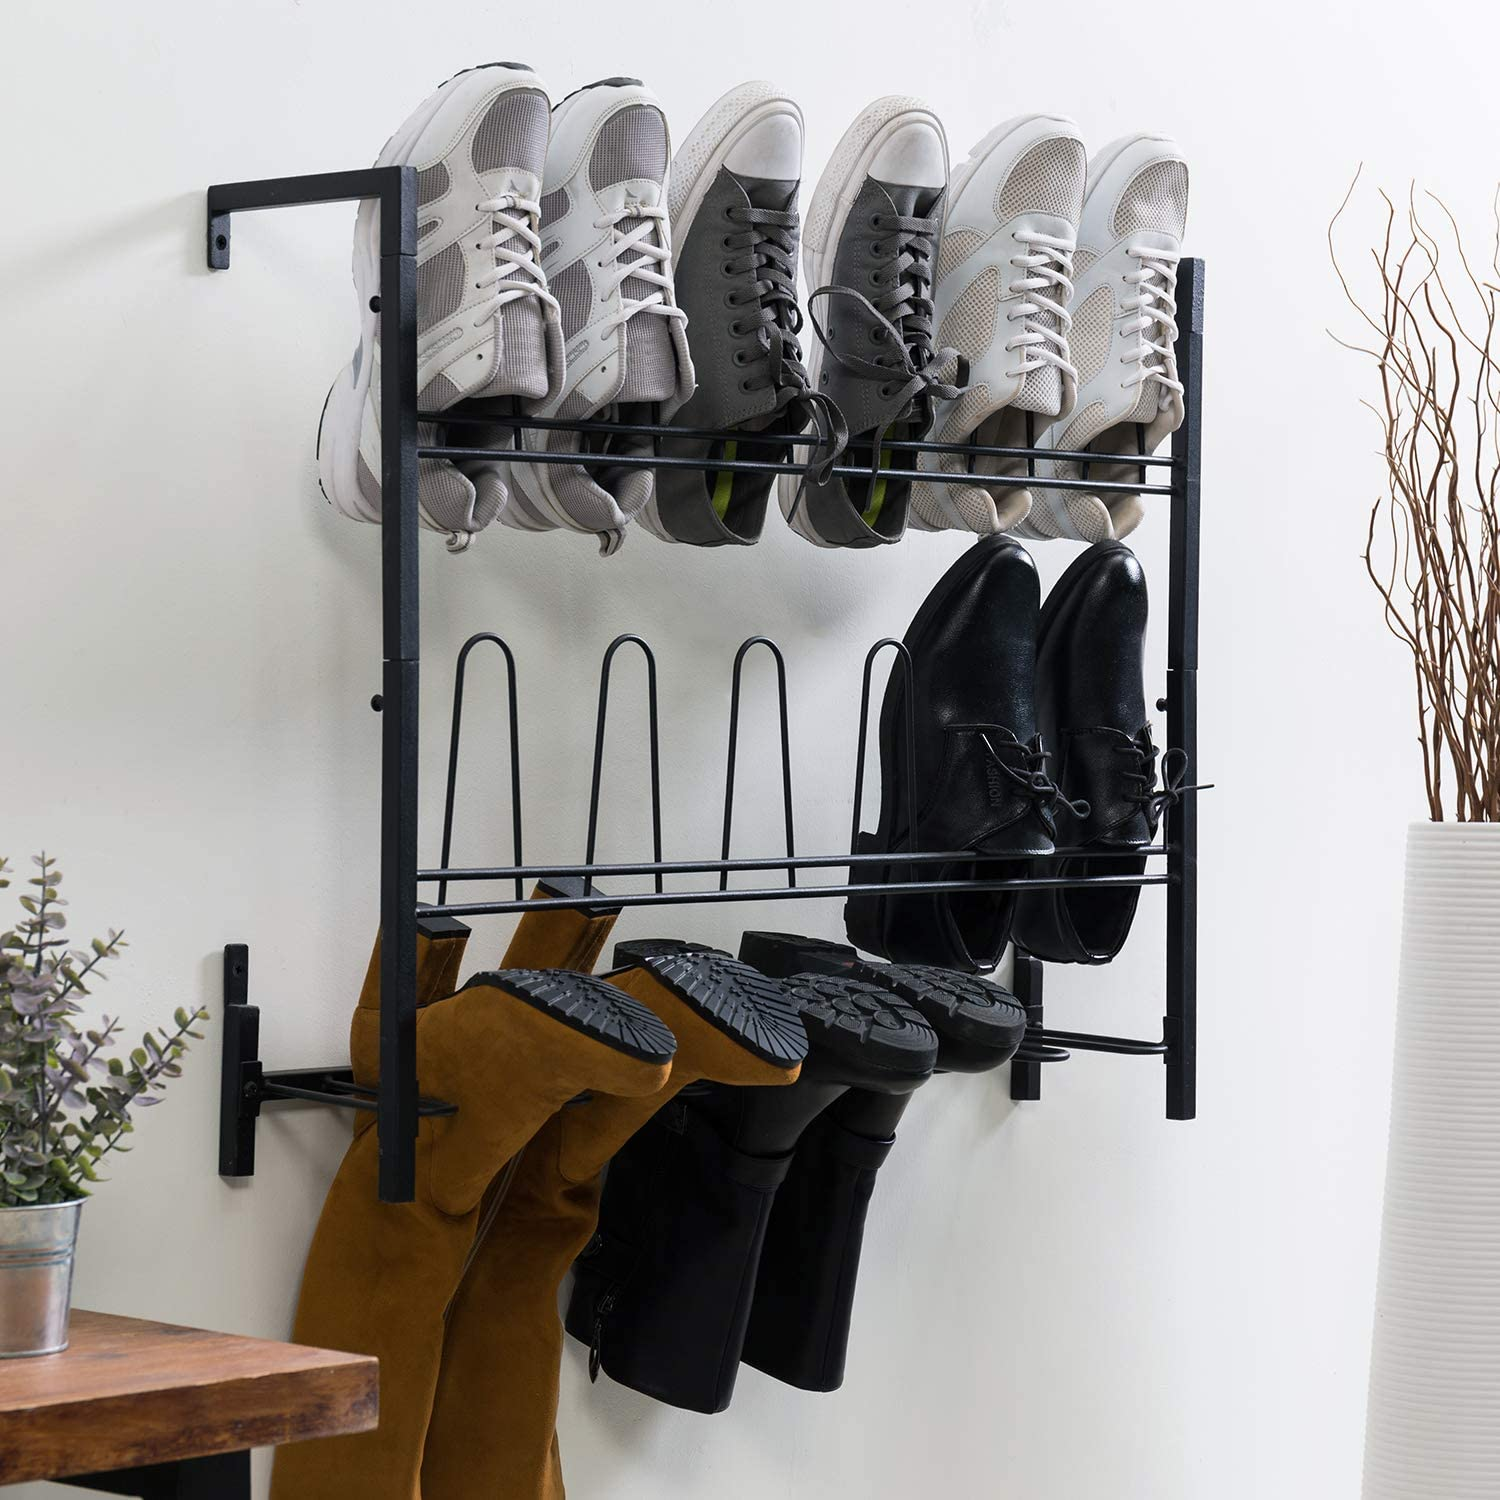 71x7m3MboTL. AC SL1500  - 20 clever shoe storage ideas for clutter-free living